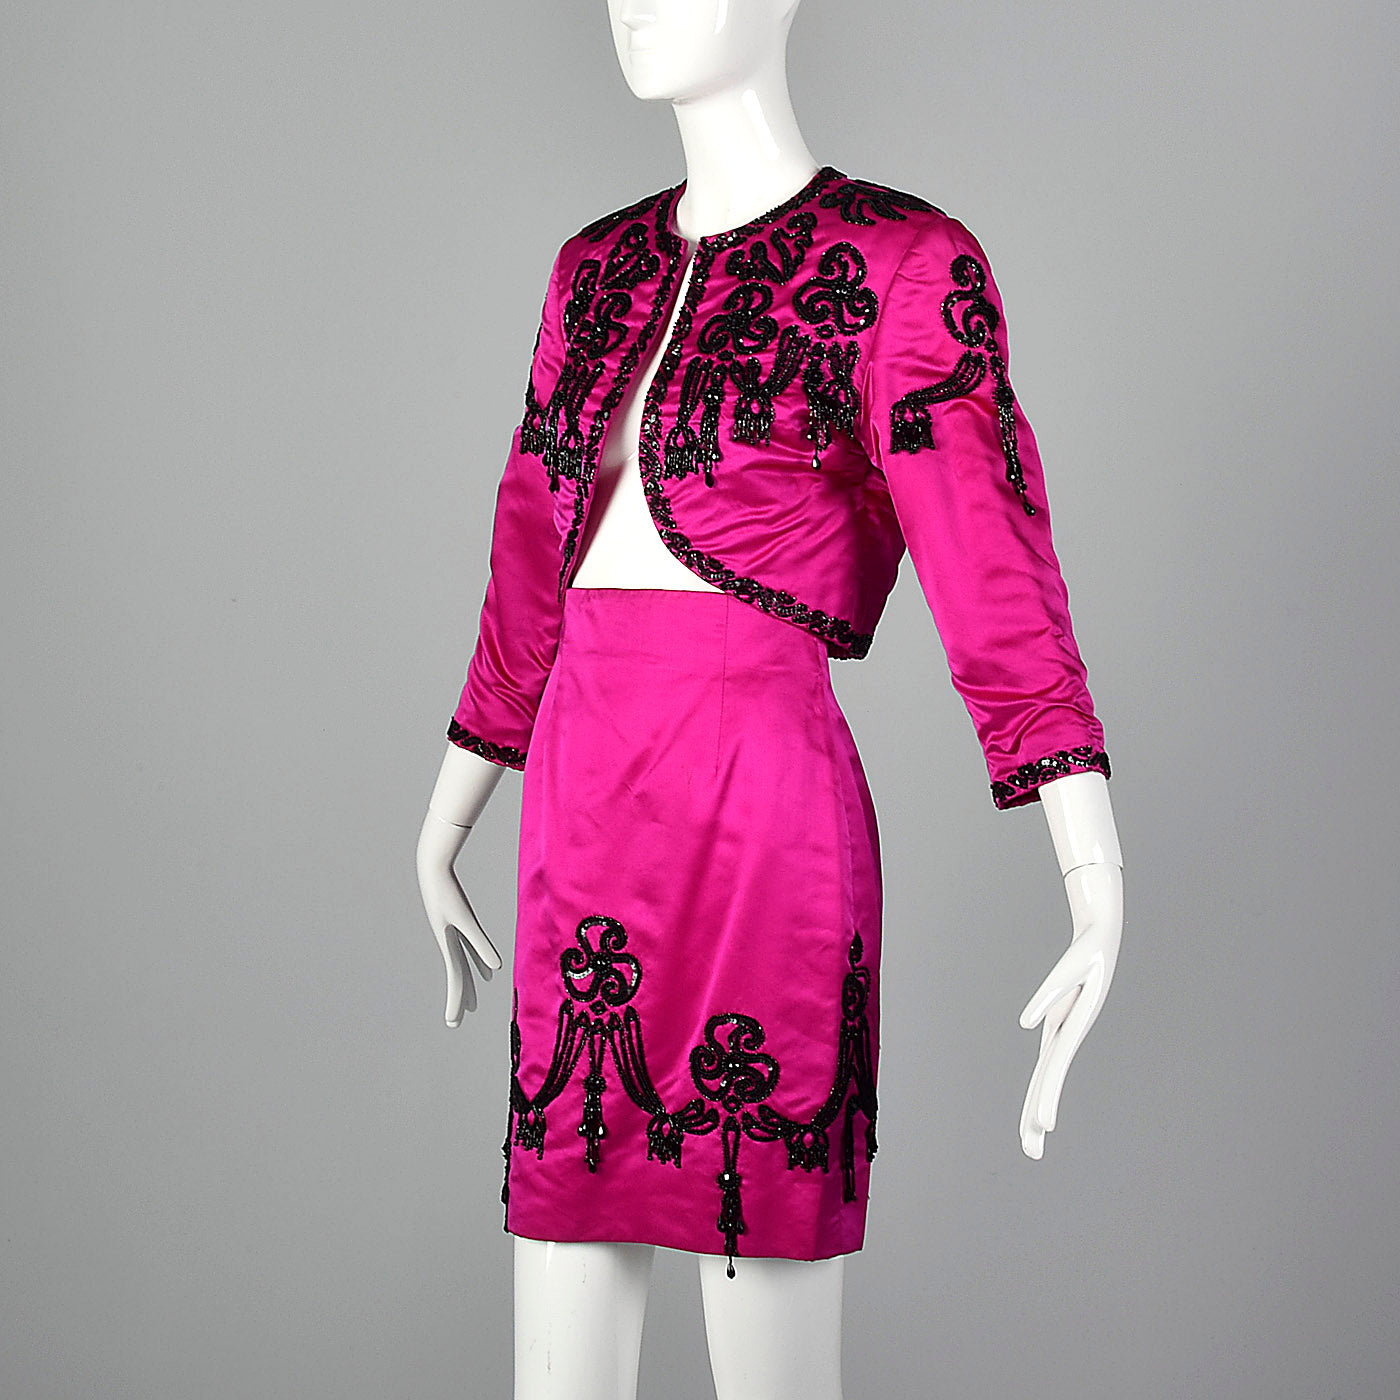 1980s Pilar Rossi Hot Pink Skirt Suit